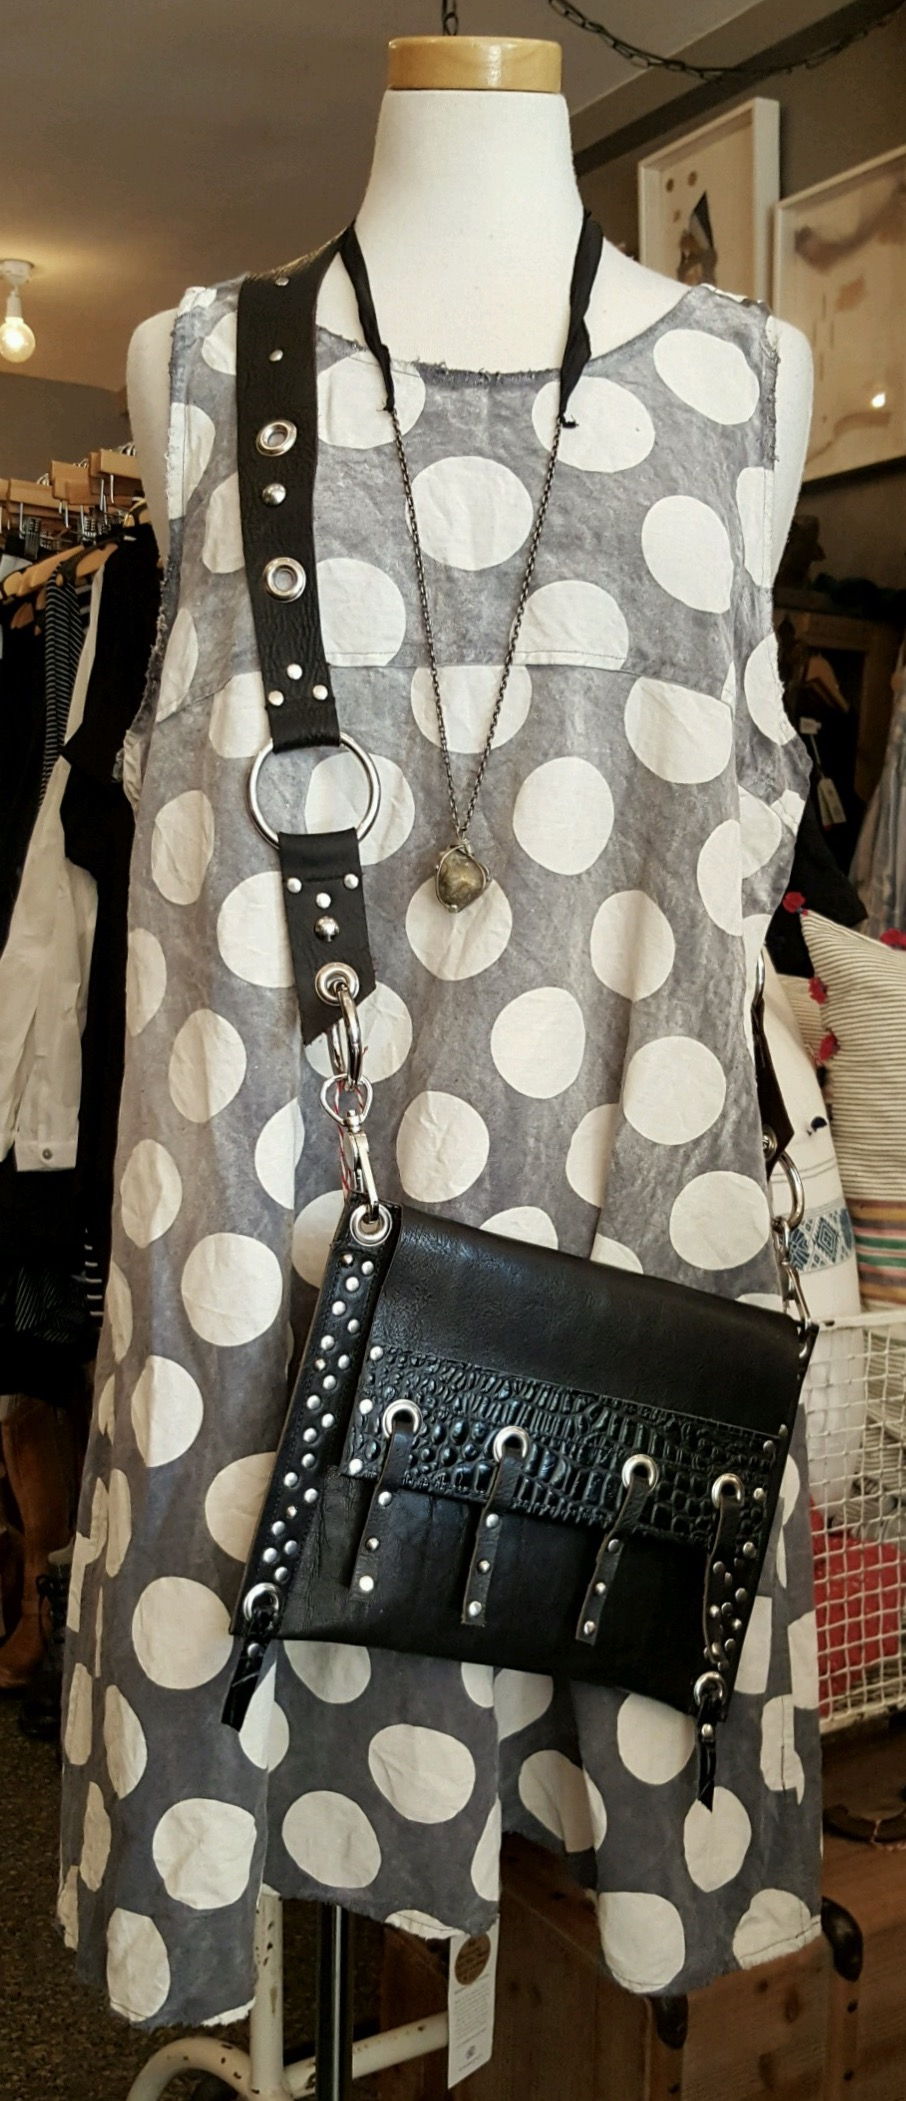 FullSizeRender_1 copy.jpg